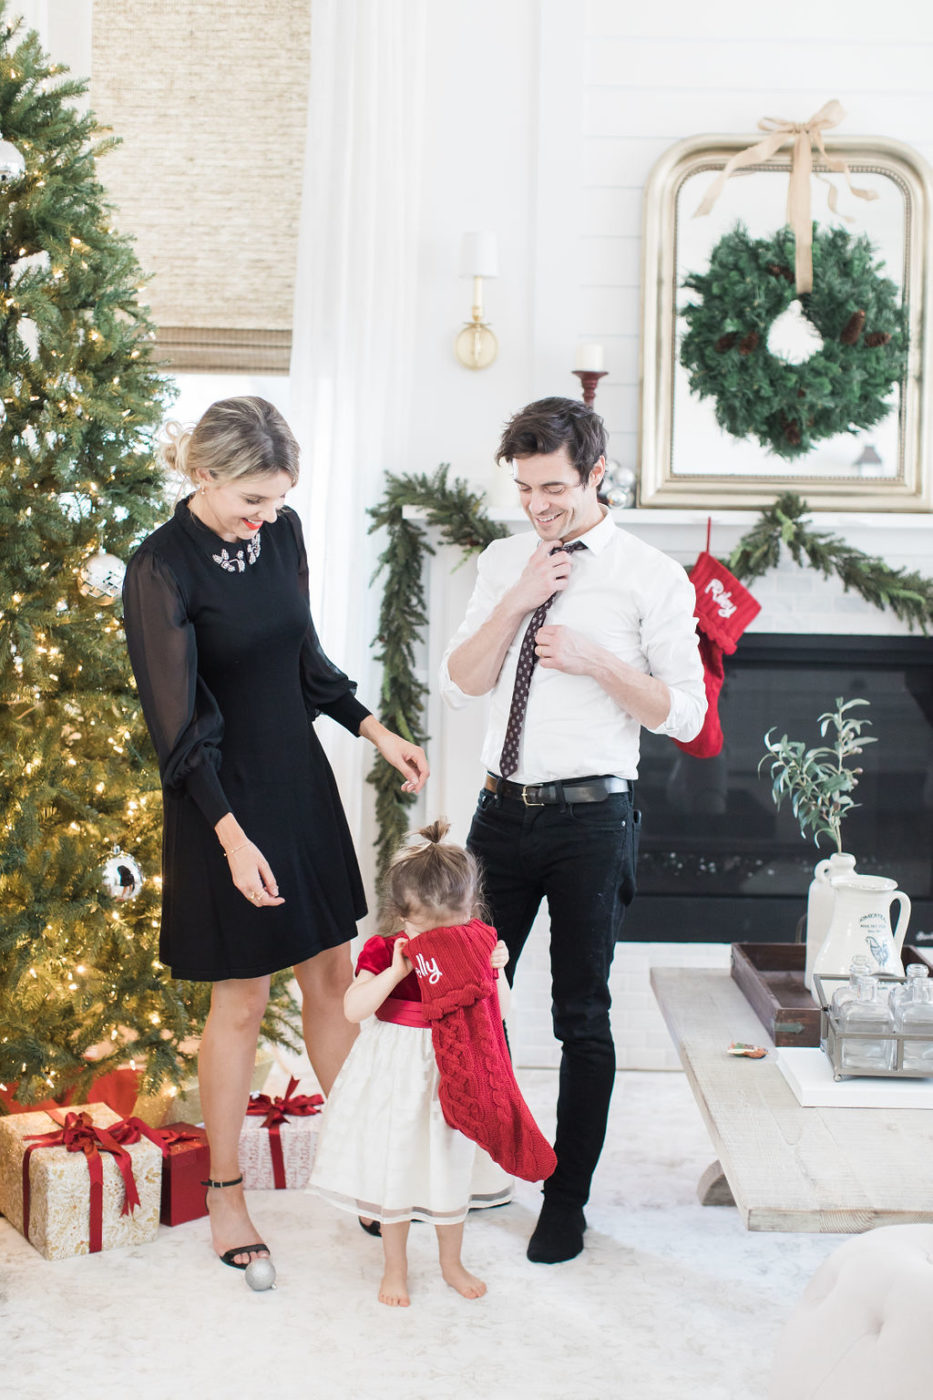 3 Great Holiday Dress Options!